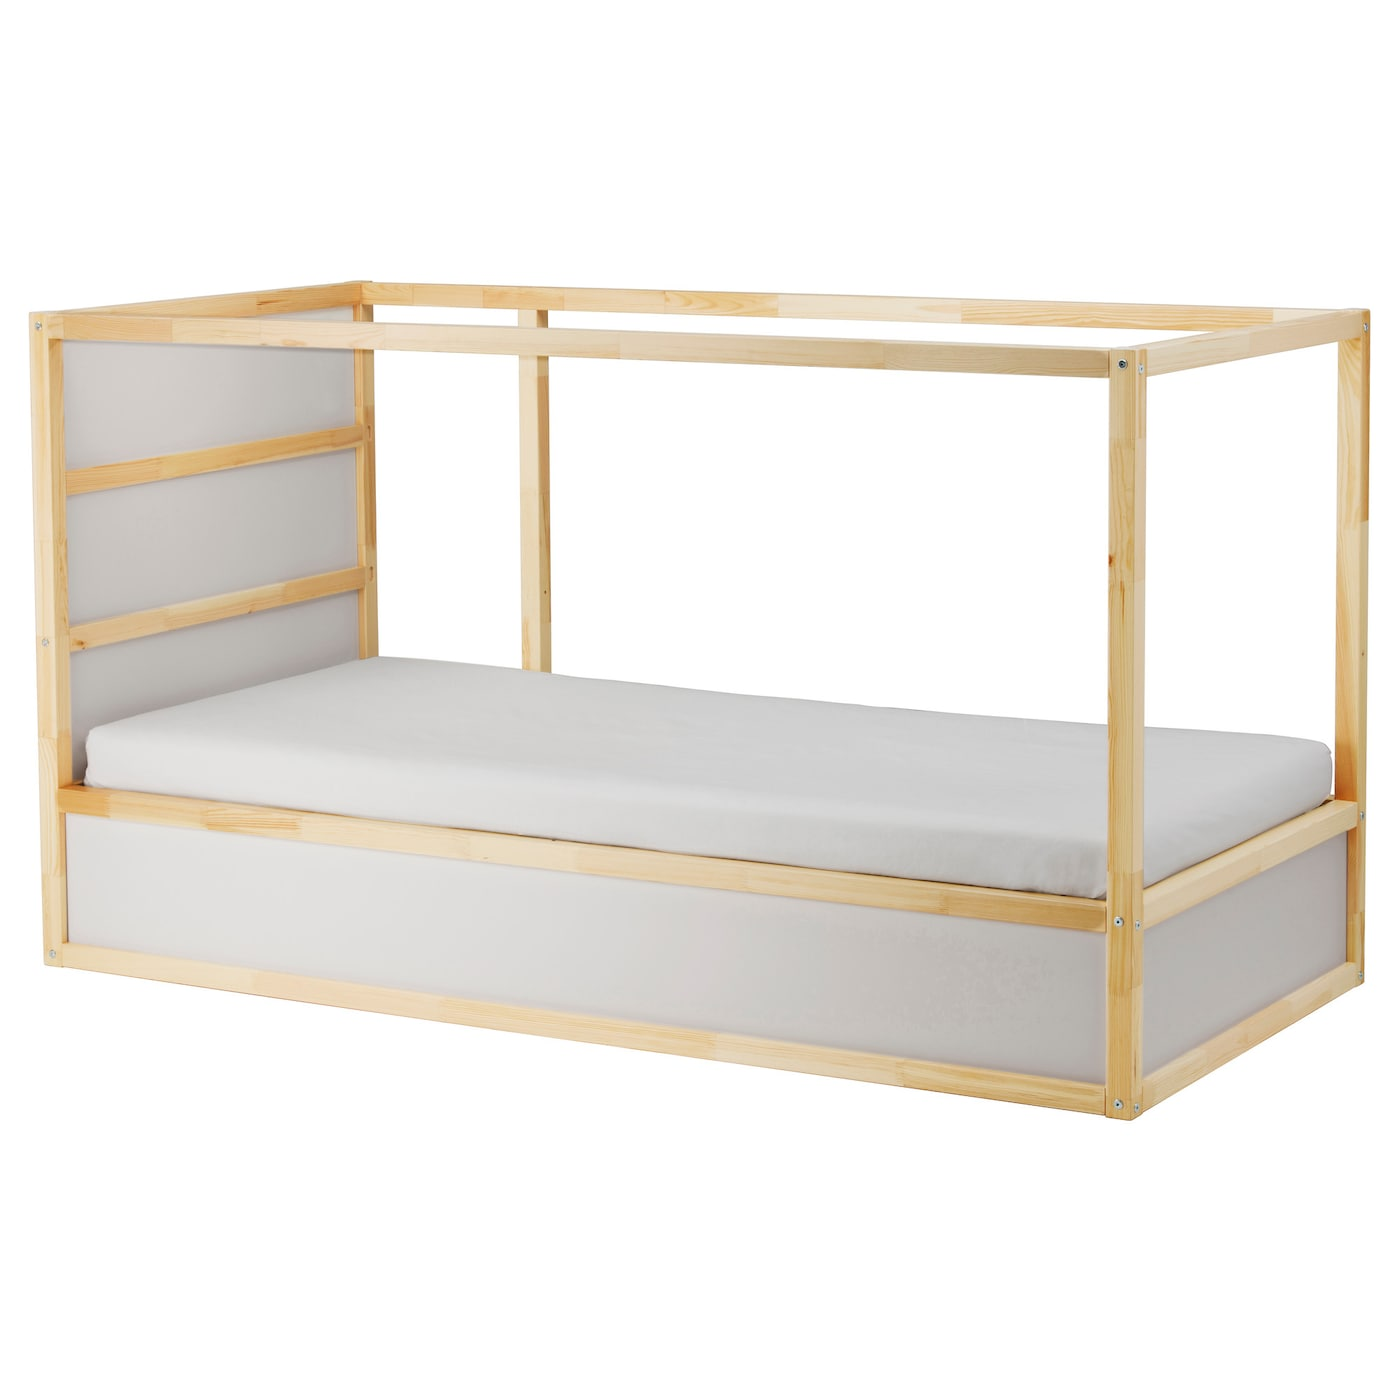 kura reversible bed white pine 90x200 cm ikea. Black Bedroom Furniture Sets. Home Design Ideas